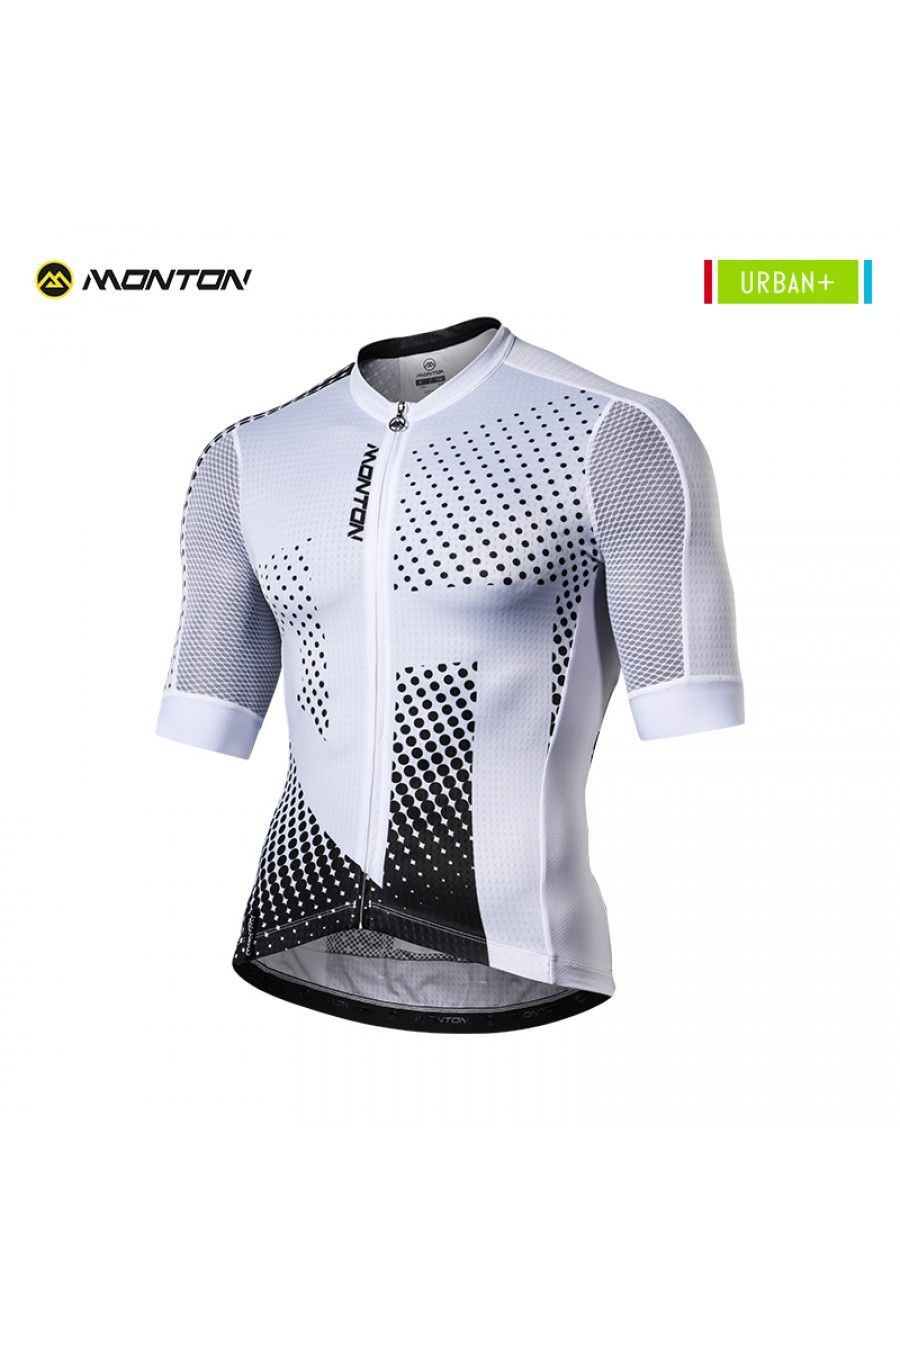 Black And White Cycling Jersey Ropa De Ciclismo Jersey De